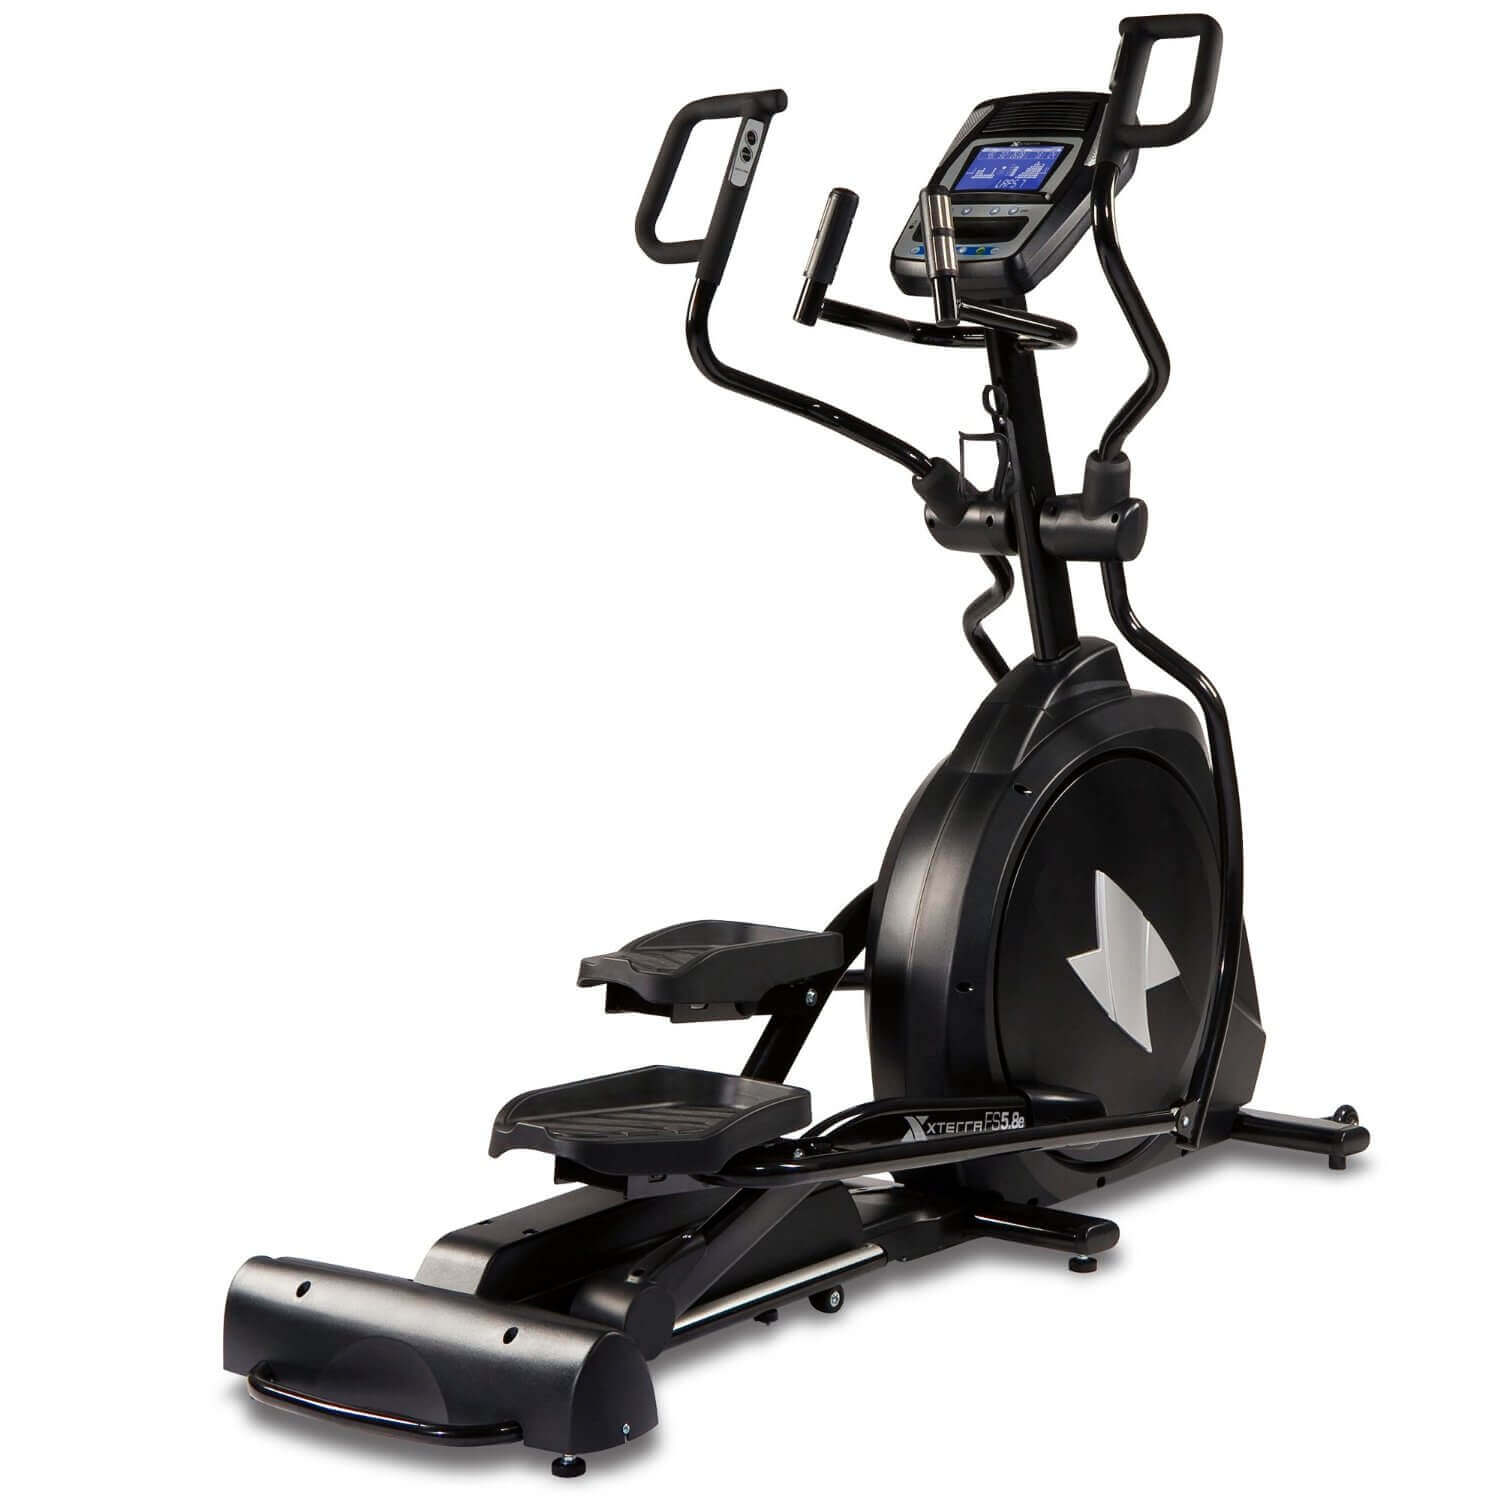 Xterra Free Style 5.8e Elliptical Cross Trainer